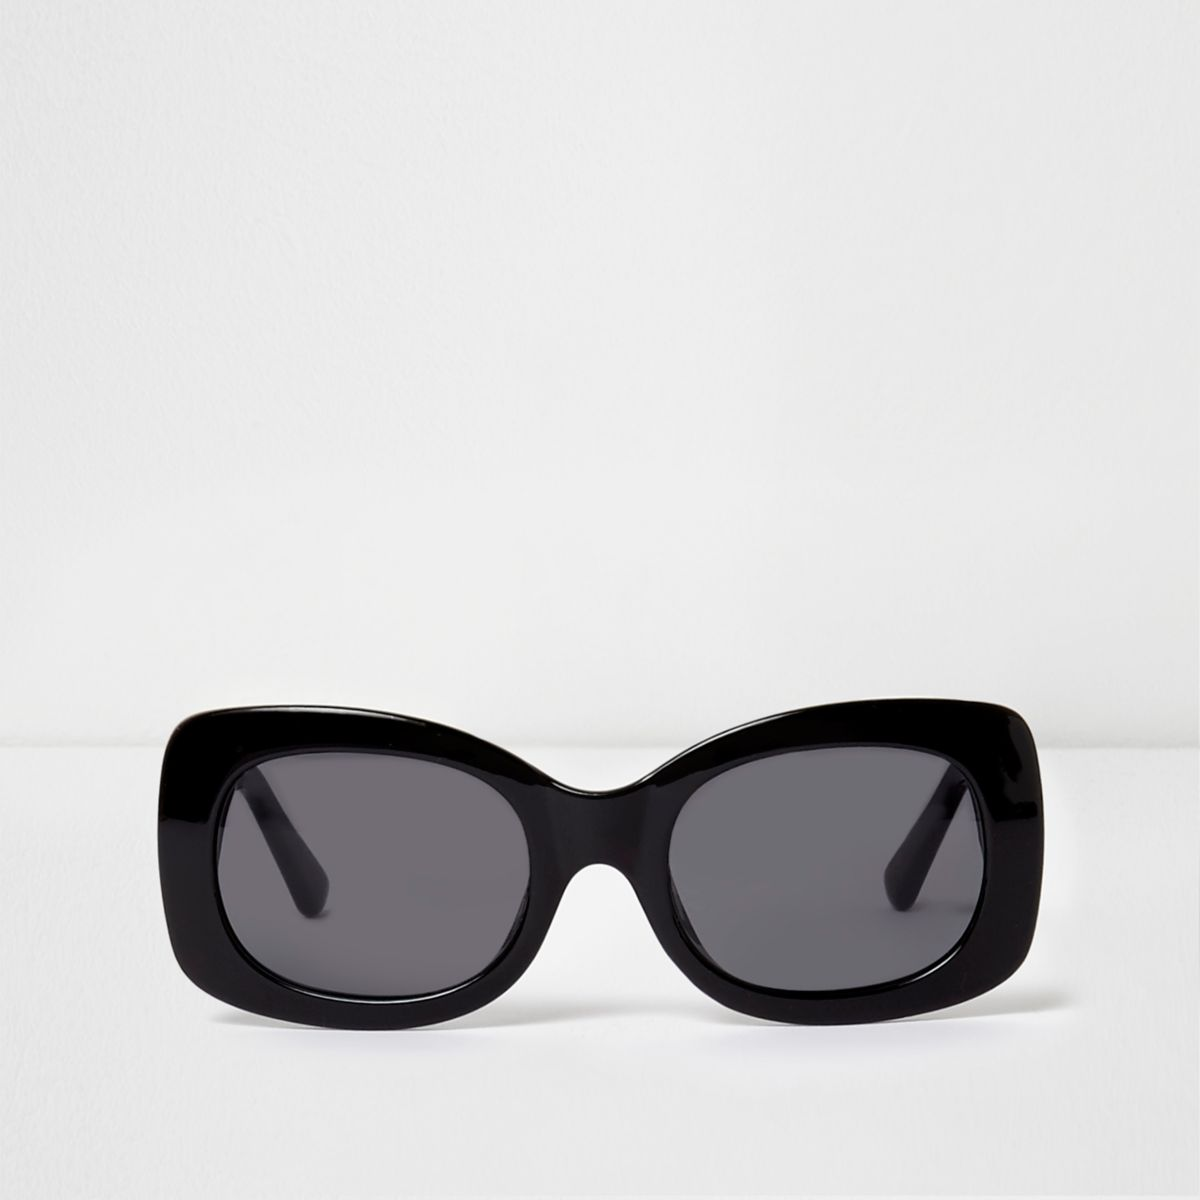 Black square frame glam sunglasses